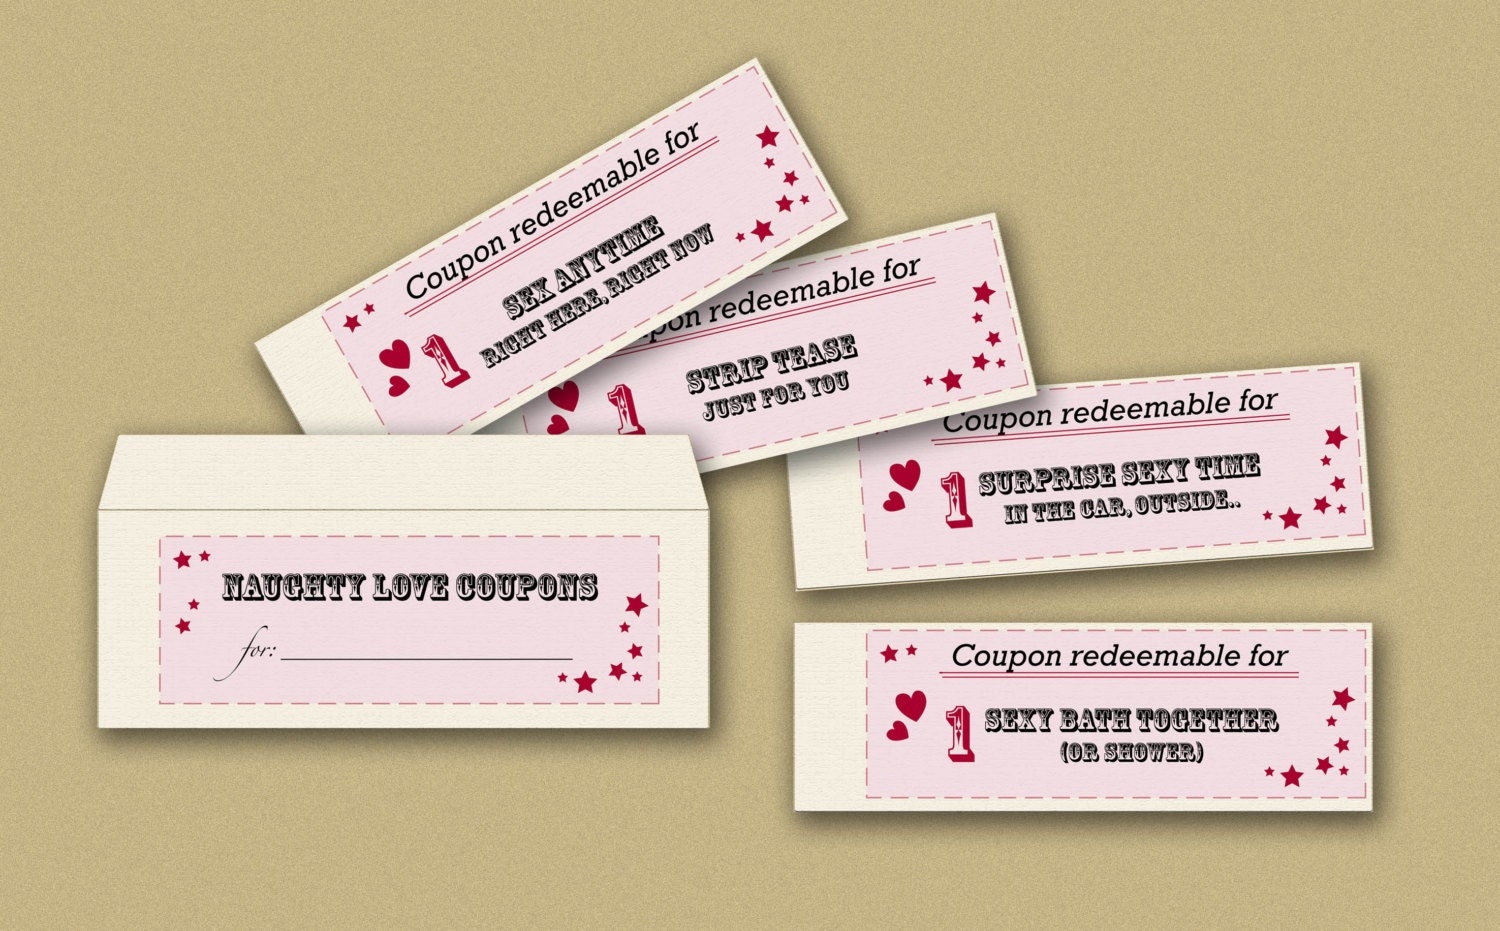 printable naughty love coupons book blank envelope 128270zoom